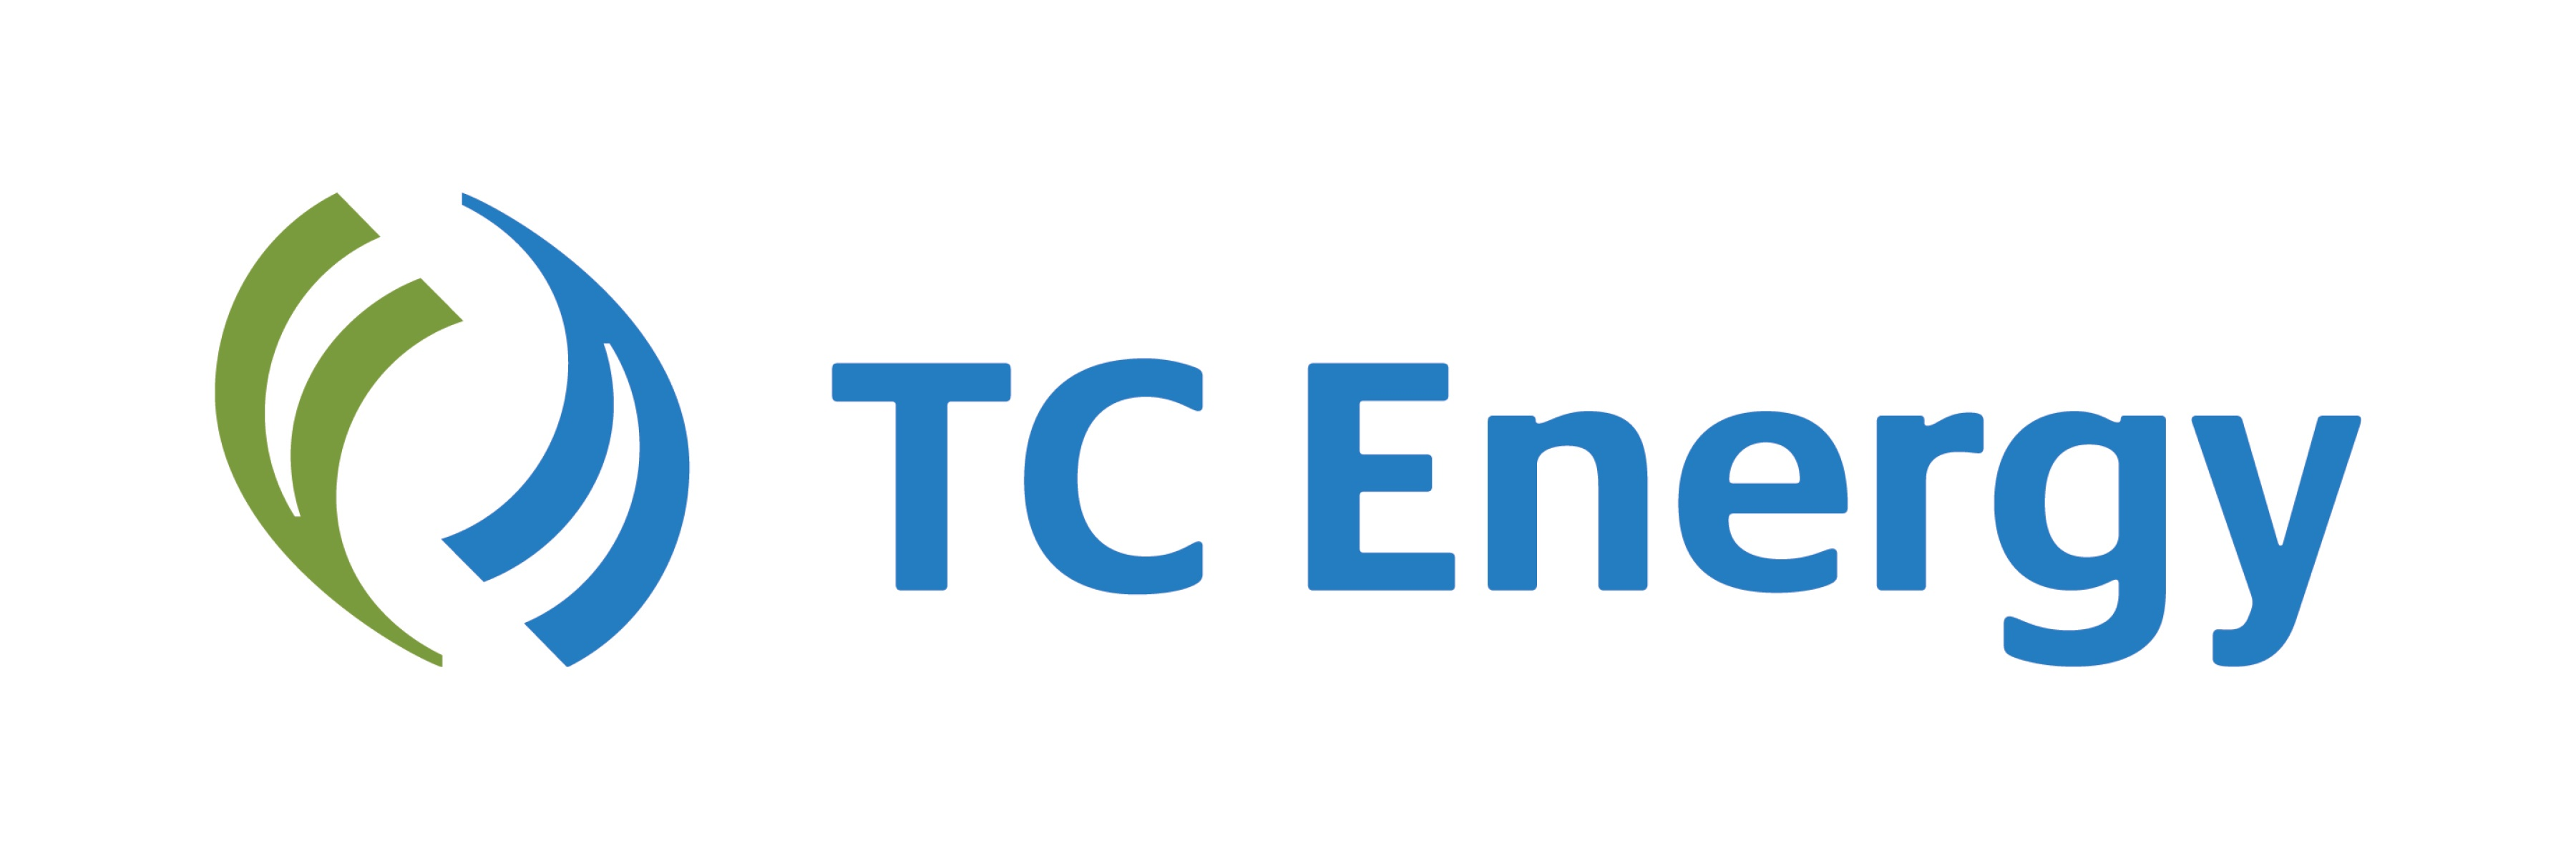 TC Energy Summer Scholars Academy encourages enrollment in science, technology, engineering and math programs at the University of Houston